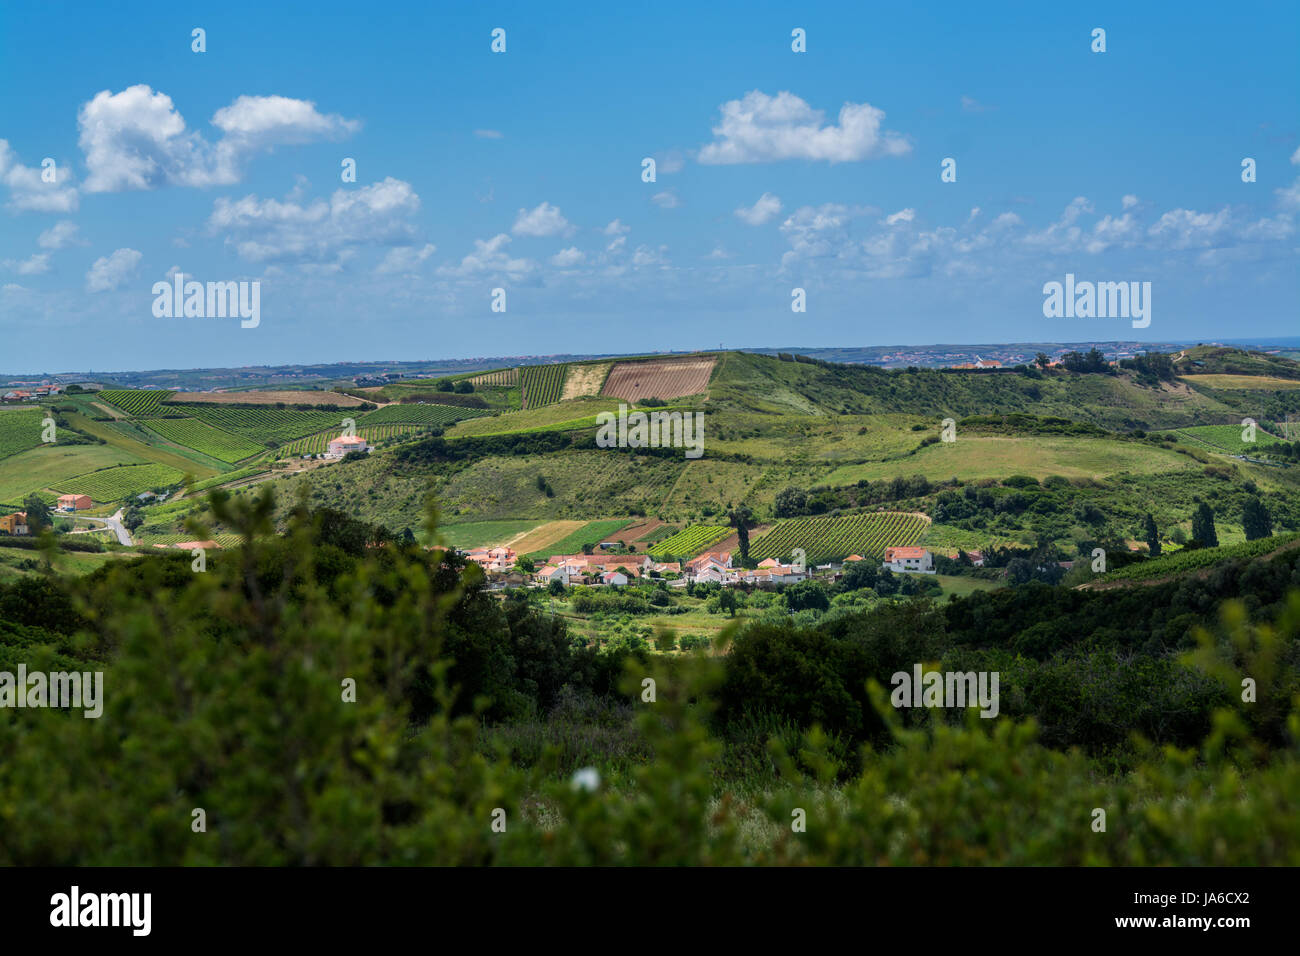 Torres Vedras Portugal. 18 May 2017.View of the country side inTorres Vedras.Torres Vedras, Portugal. photography - Stock Image